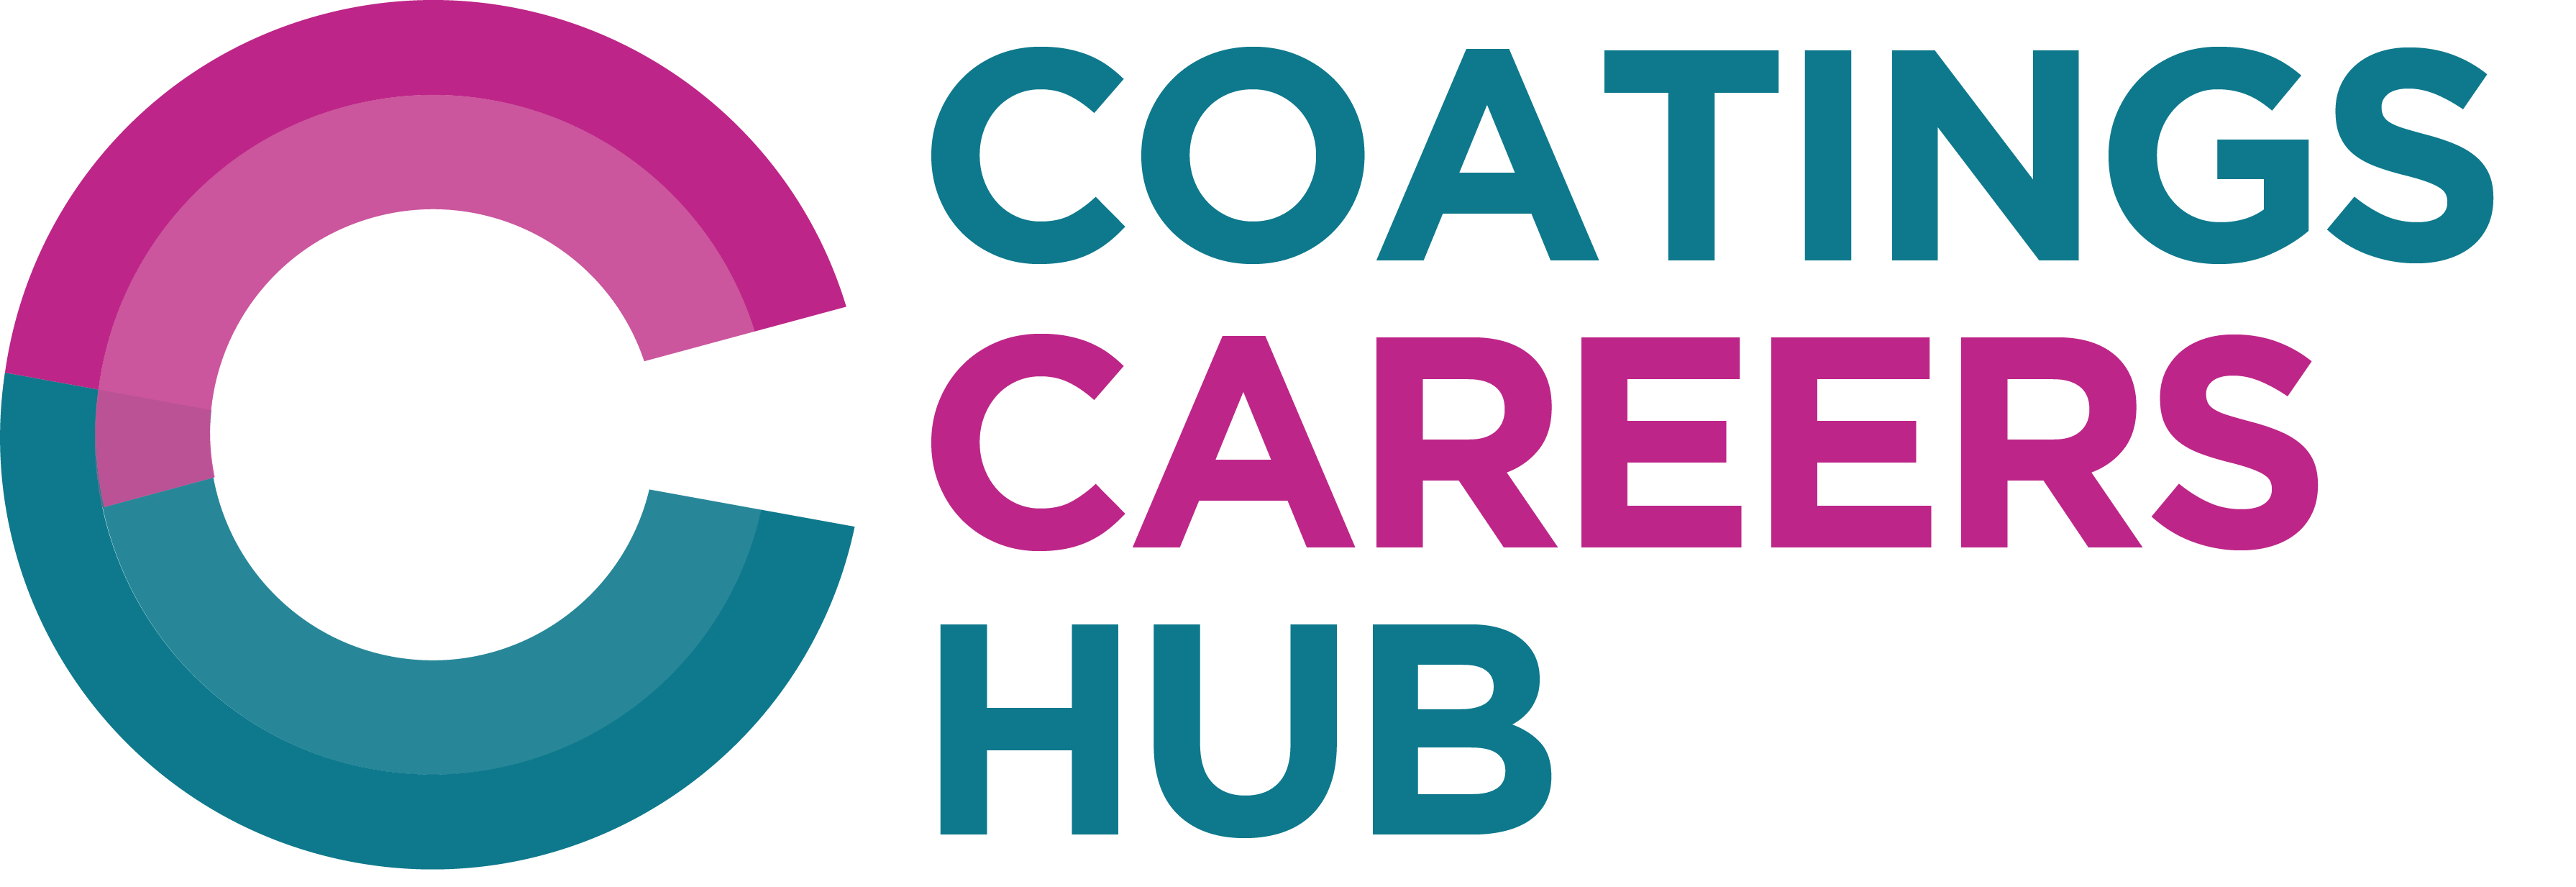 Coatings Careers Hub